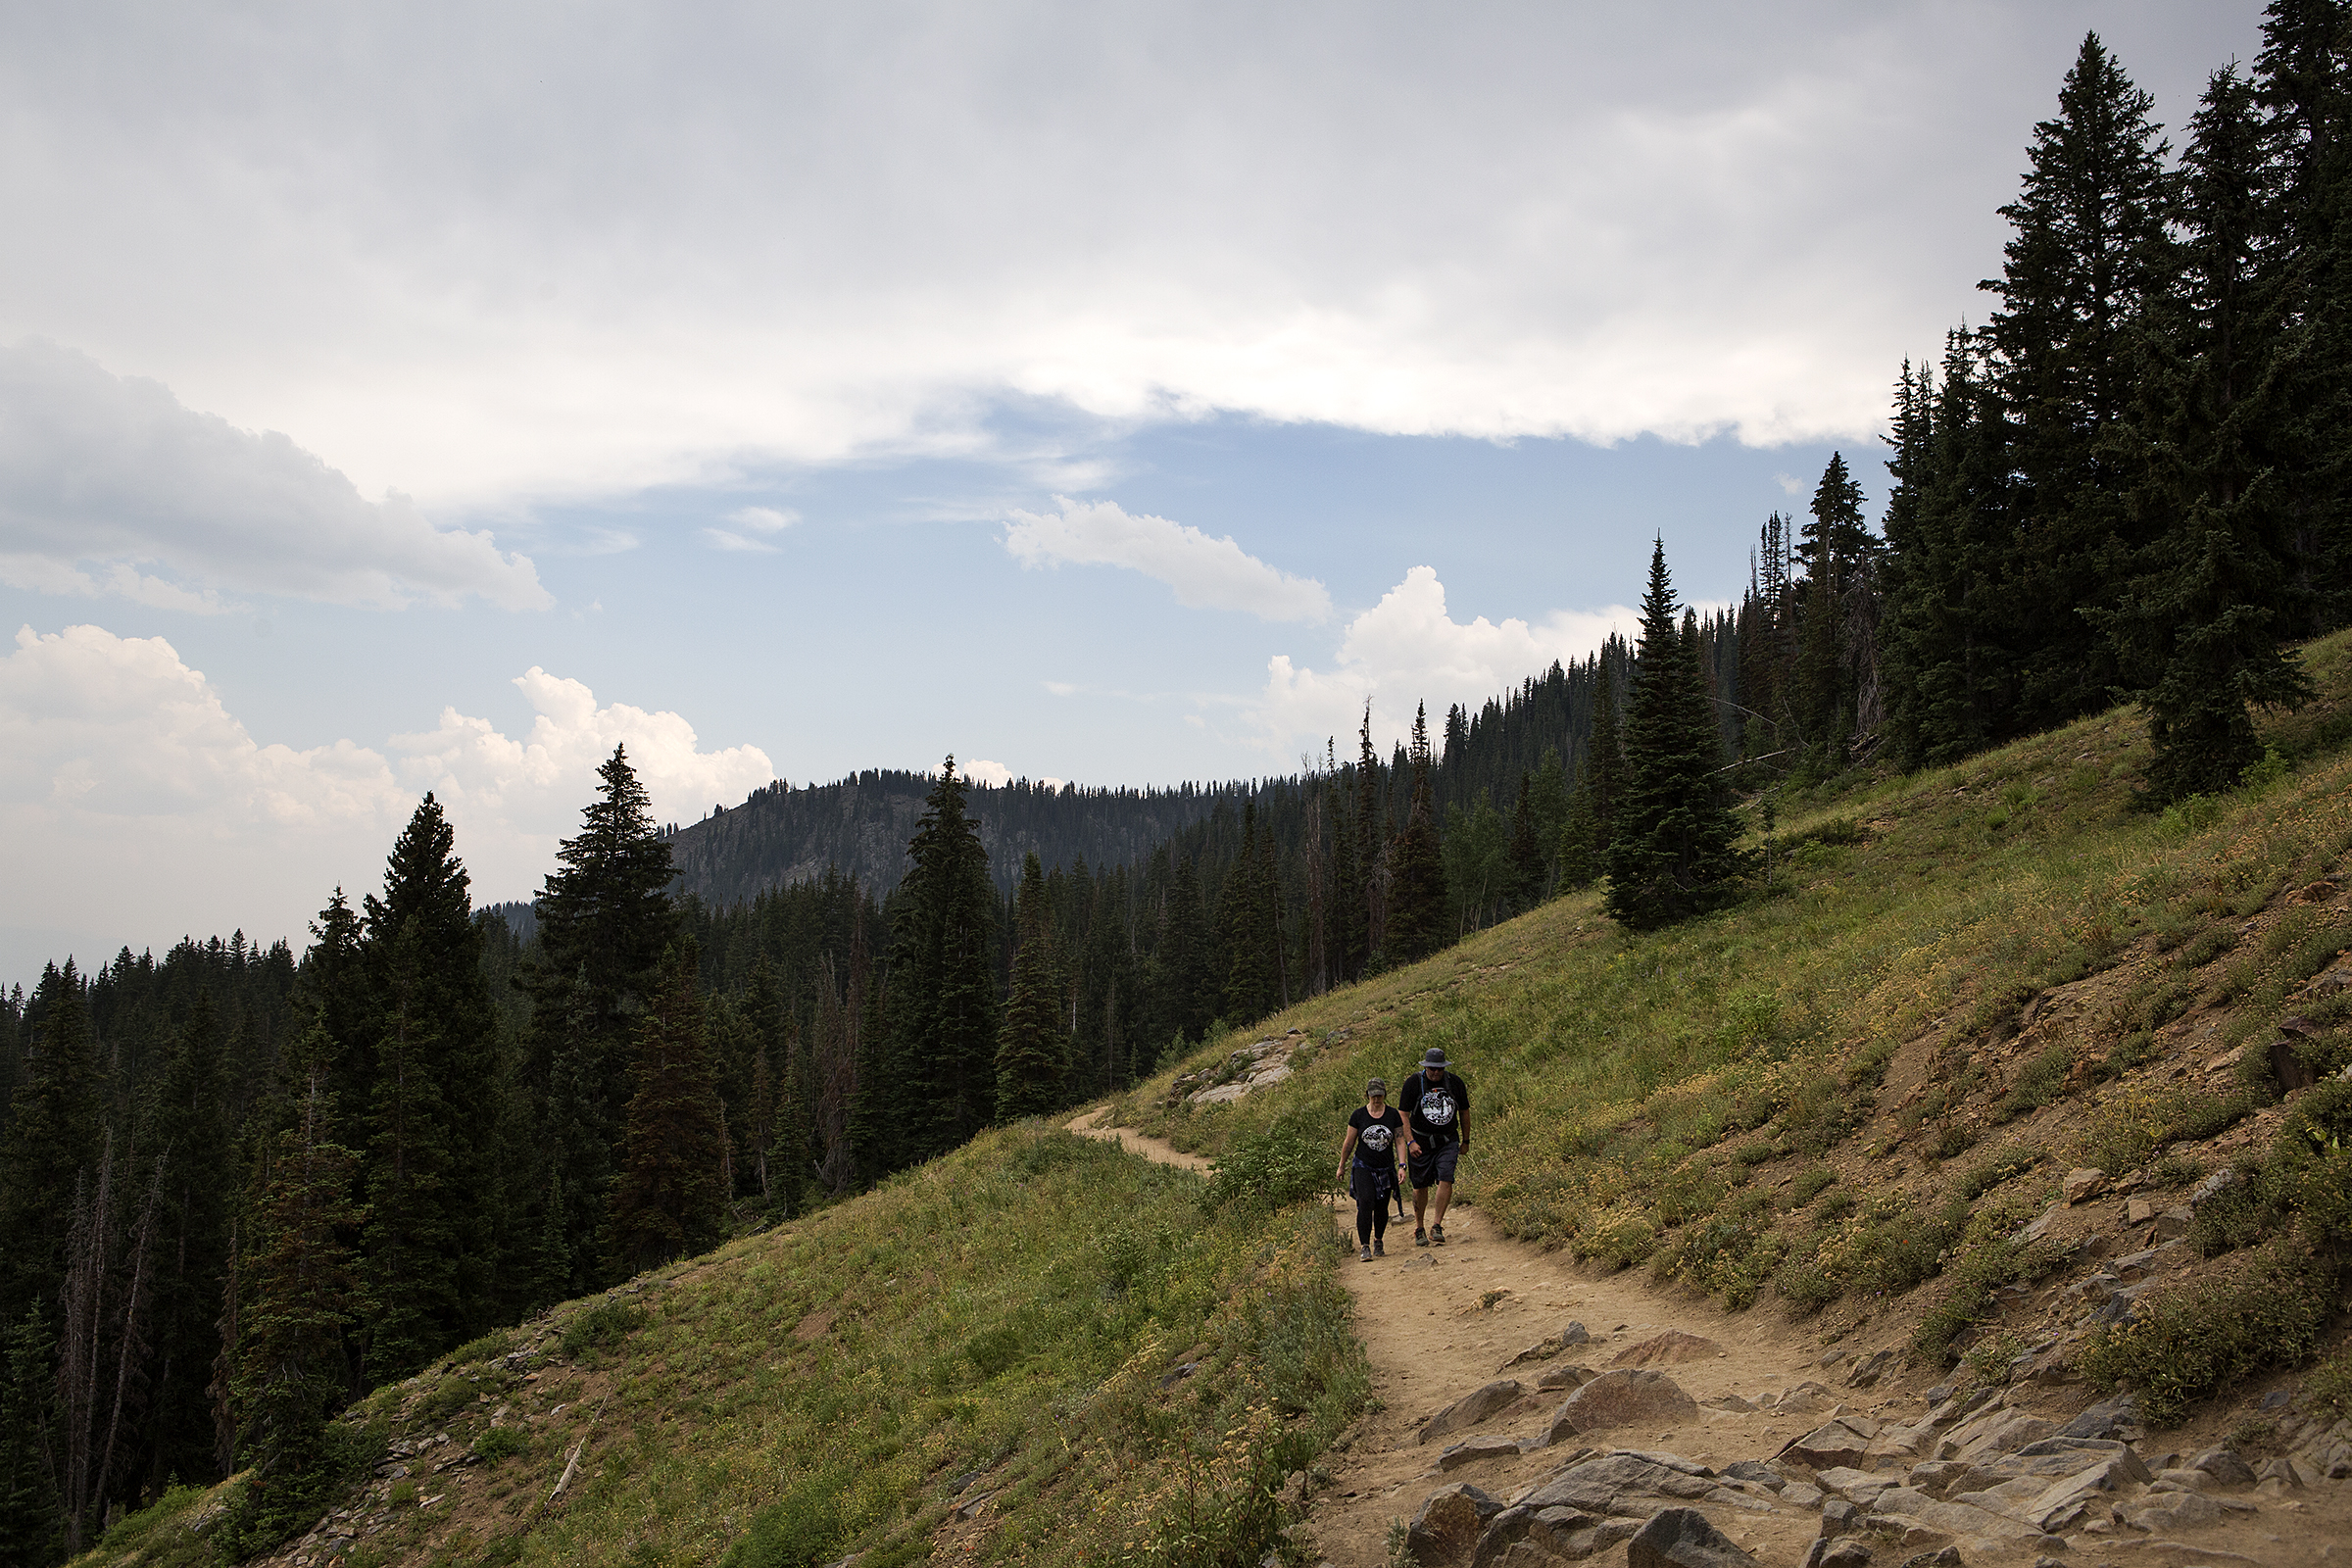 Ryan Anderson, right, and Rickale Sceili hike through the Bonanza Flat Conservation Area near Park City on Friday, Aug. 3, 2018.